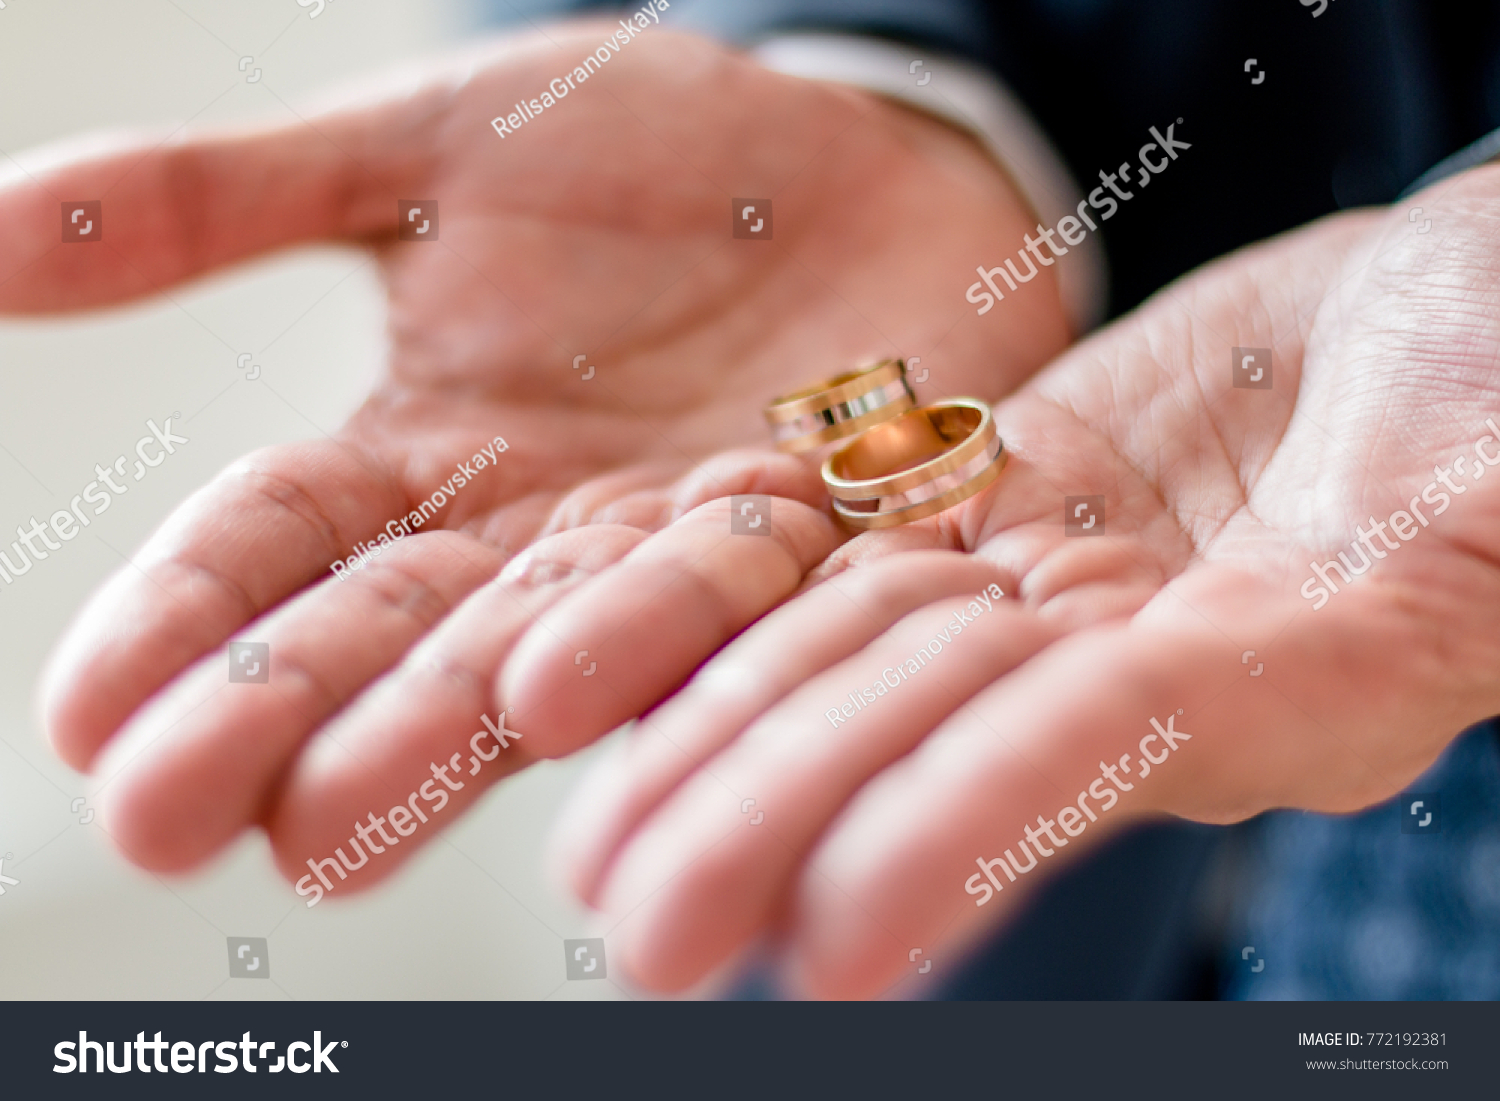 Man Holds Two Rings His Hands Stock Photo (Royalty Free) 772192381 ...